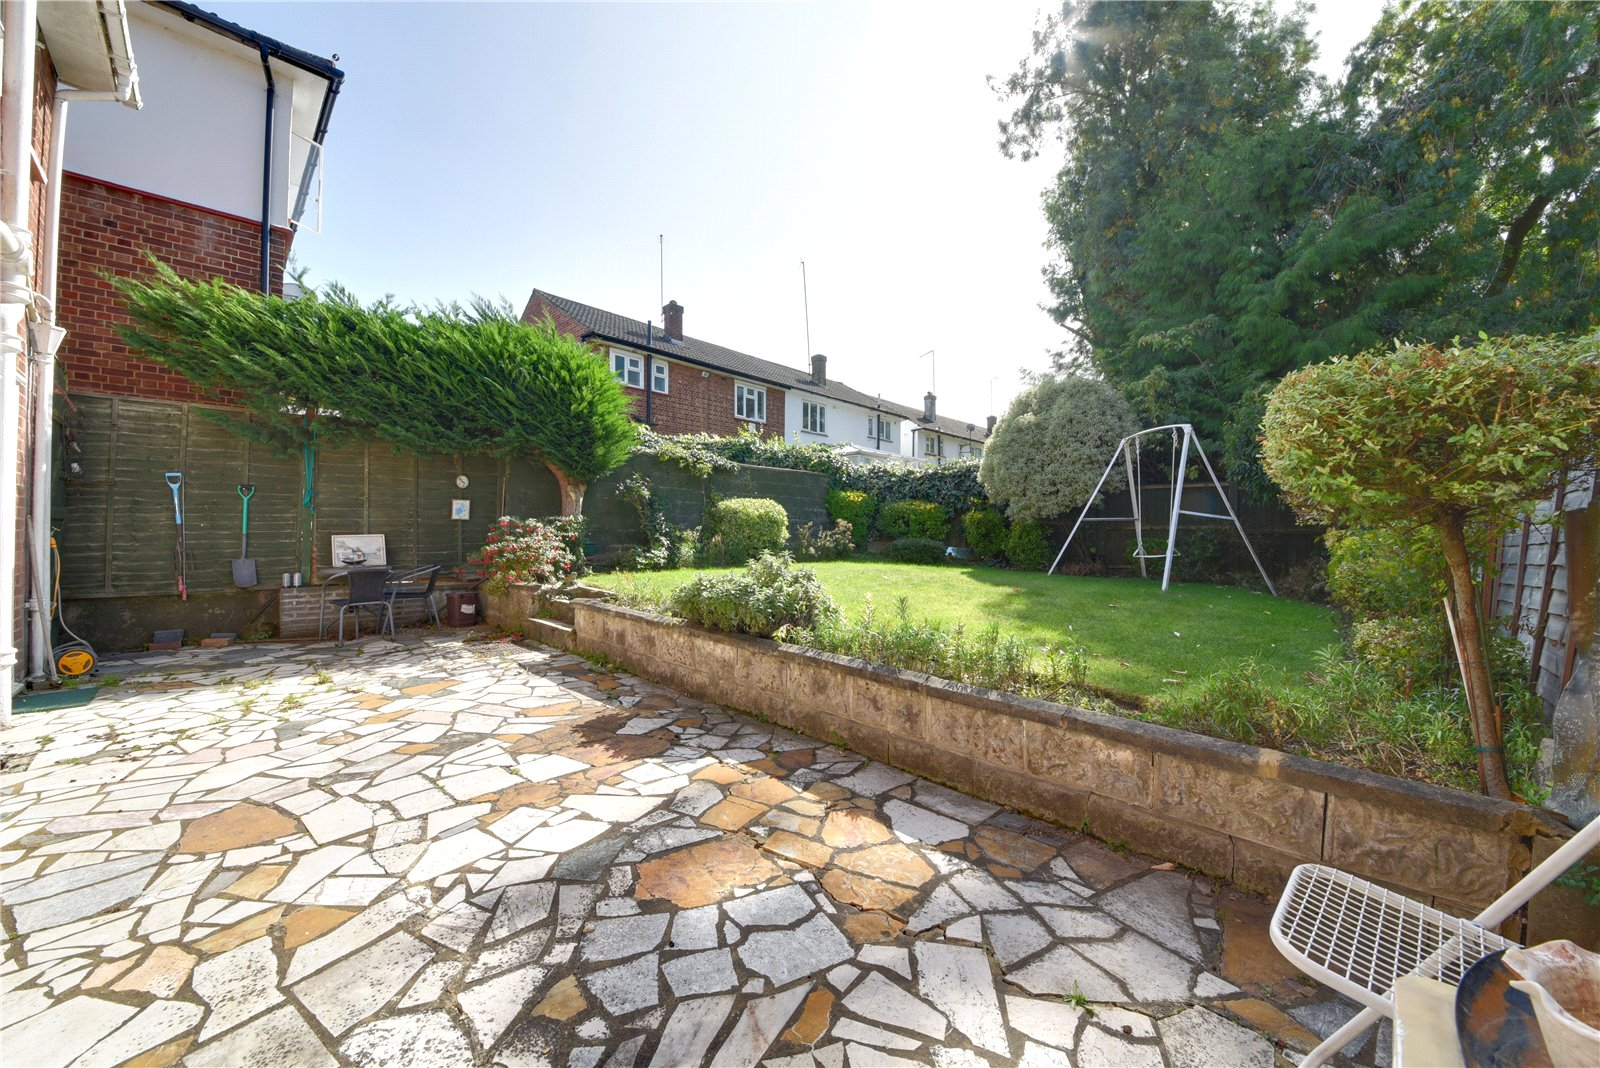 3 bed house for sale in West Finchley, N3 1PB 9